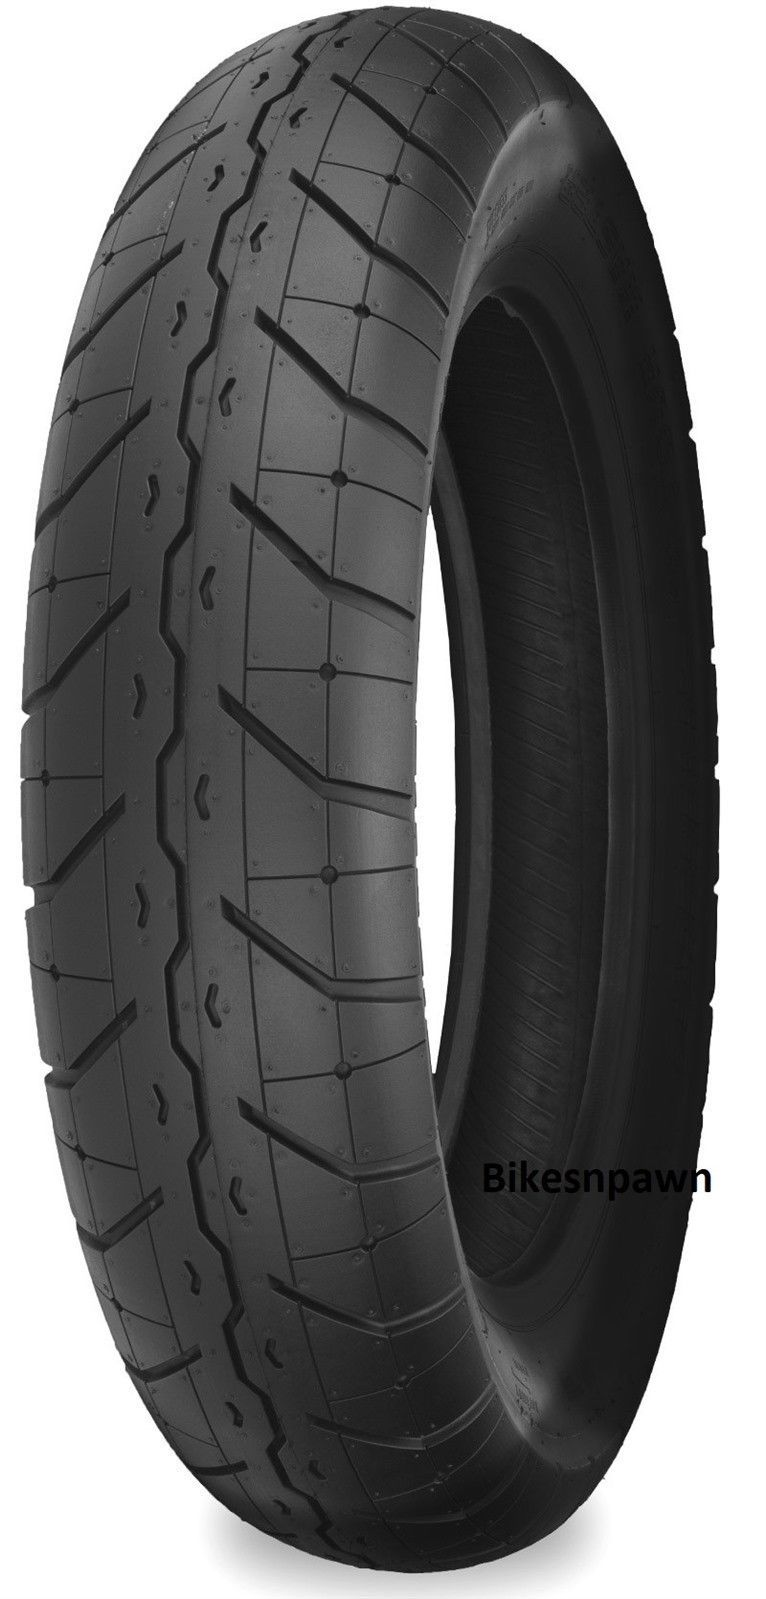 New Shinko 230 Tour Master 110/90-18 Front Motorcycle Tire 61V